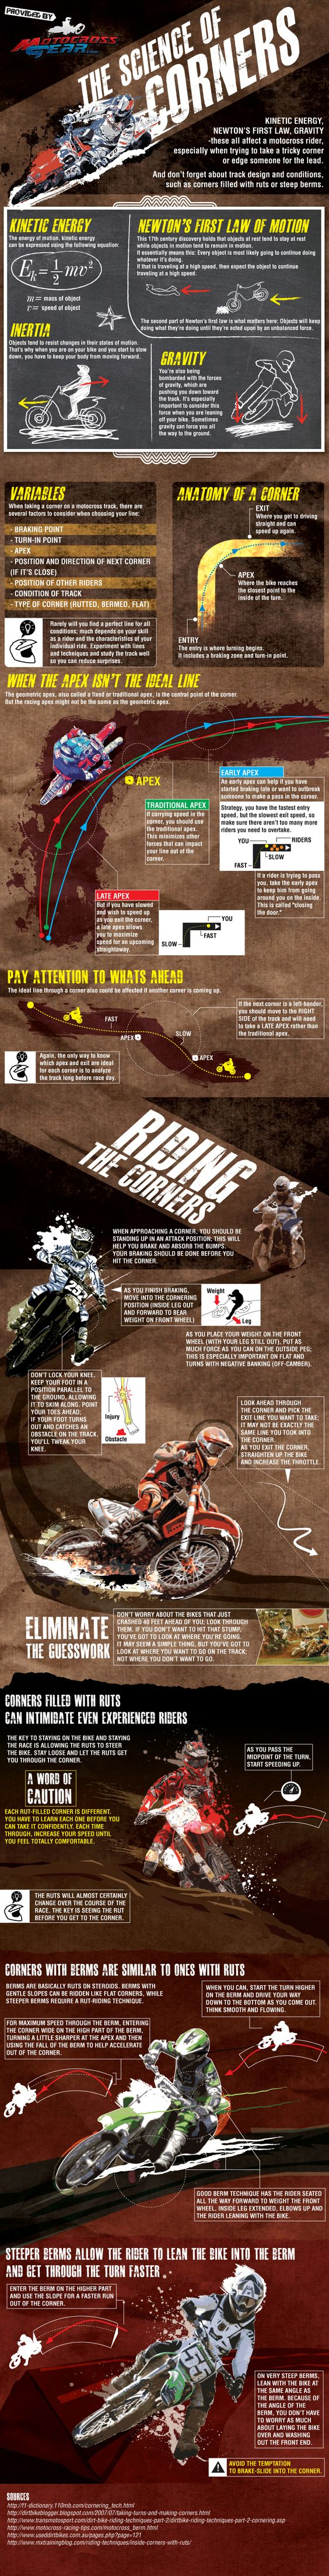 Secrets of Cornering in a Motorcycle - Infographic Pinned by Joe Lavin of www.TouchFactorMassage.com and www.PowerOfTouchWorkshops.com in Seattle, Washington